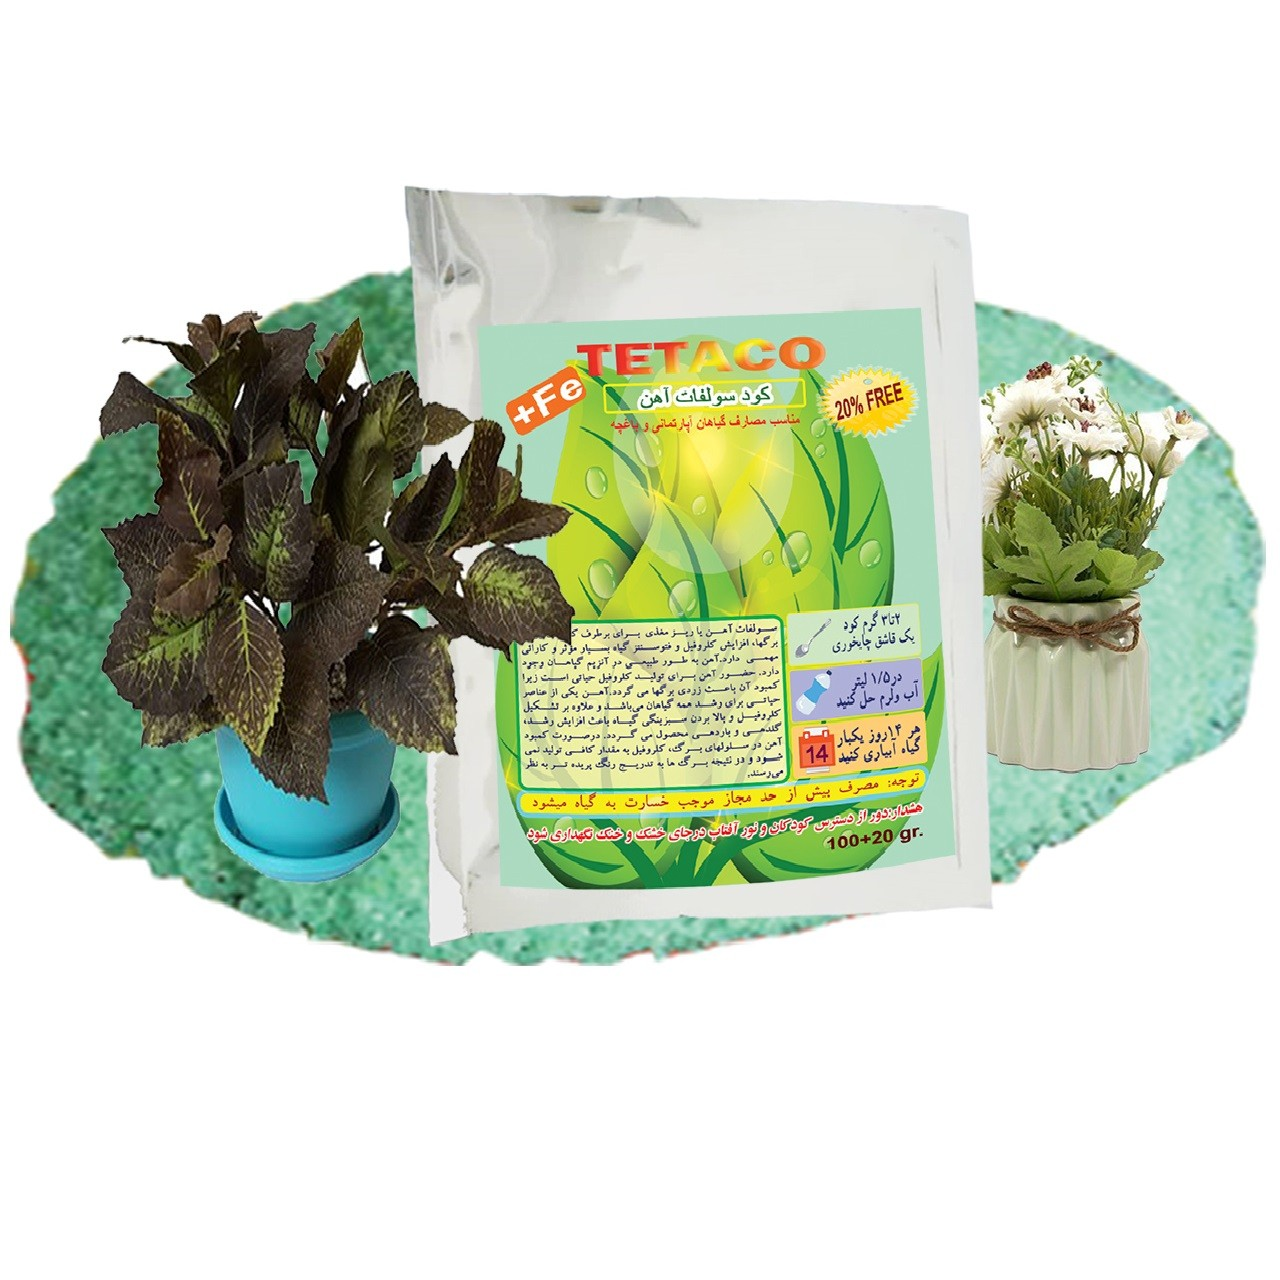 products  Tetako iron sulfate fertilizer suitable for houseplants weighing 120 g